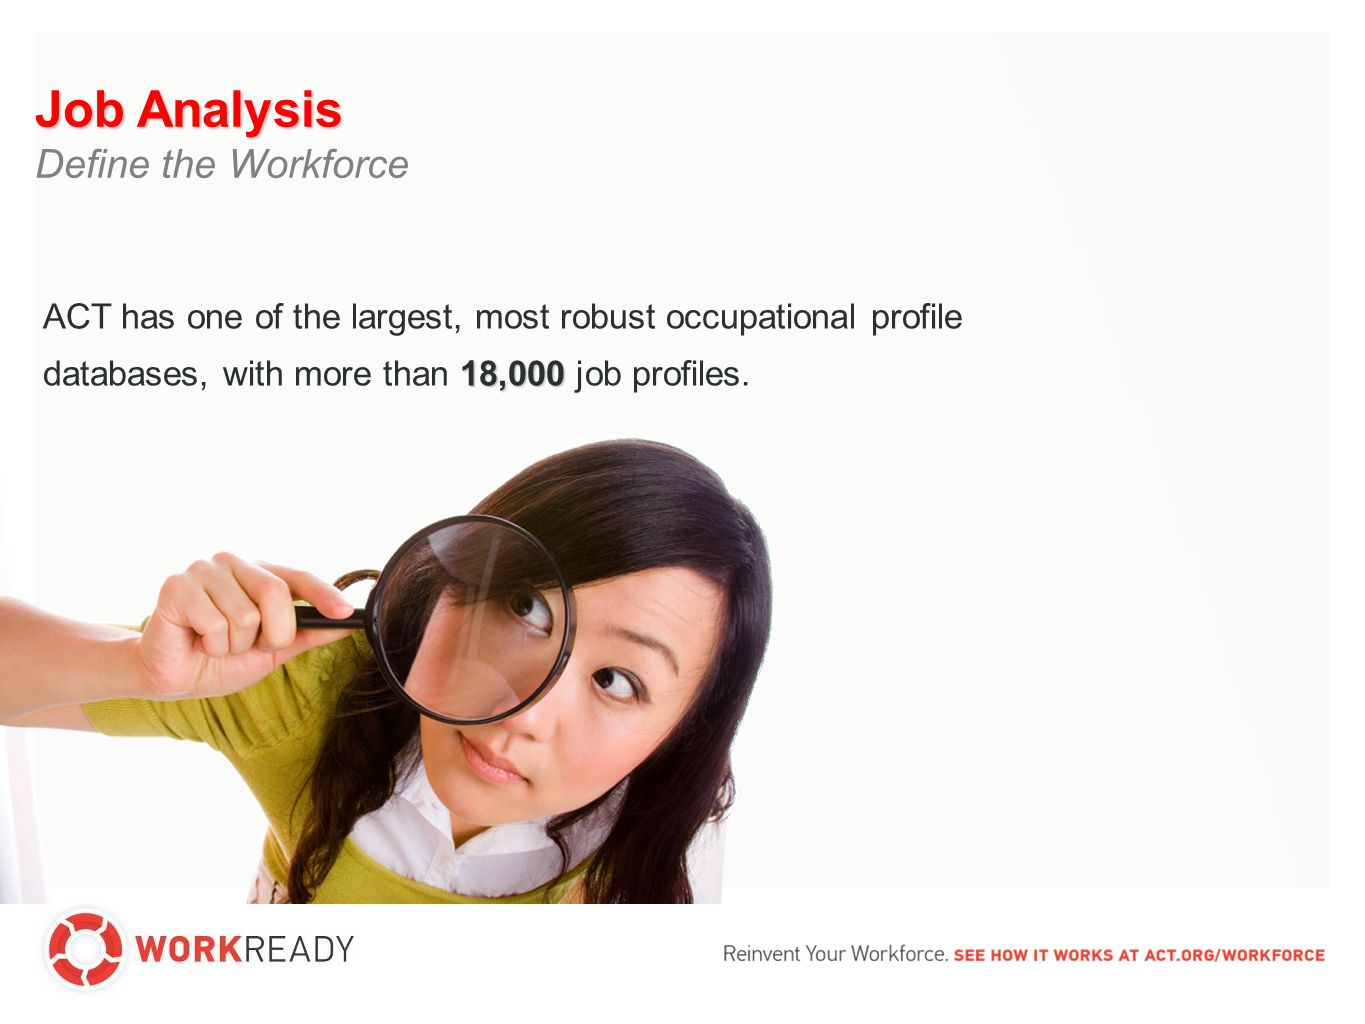 Job Analysis Define the Workforce 18,000 ACT has one of the largest, most robust occupational profile databases, with more than 18,000 job profiles.